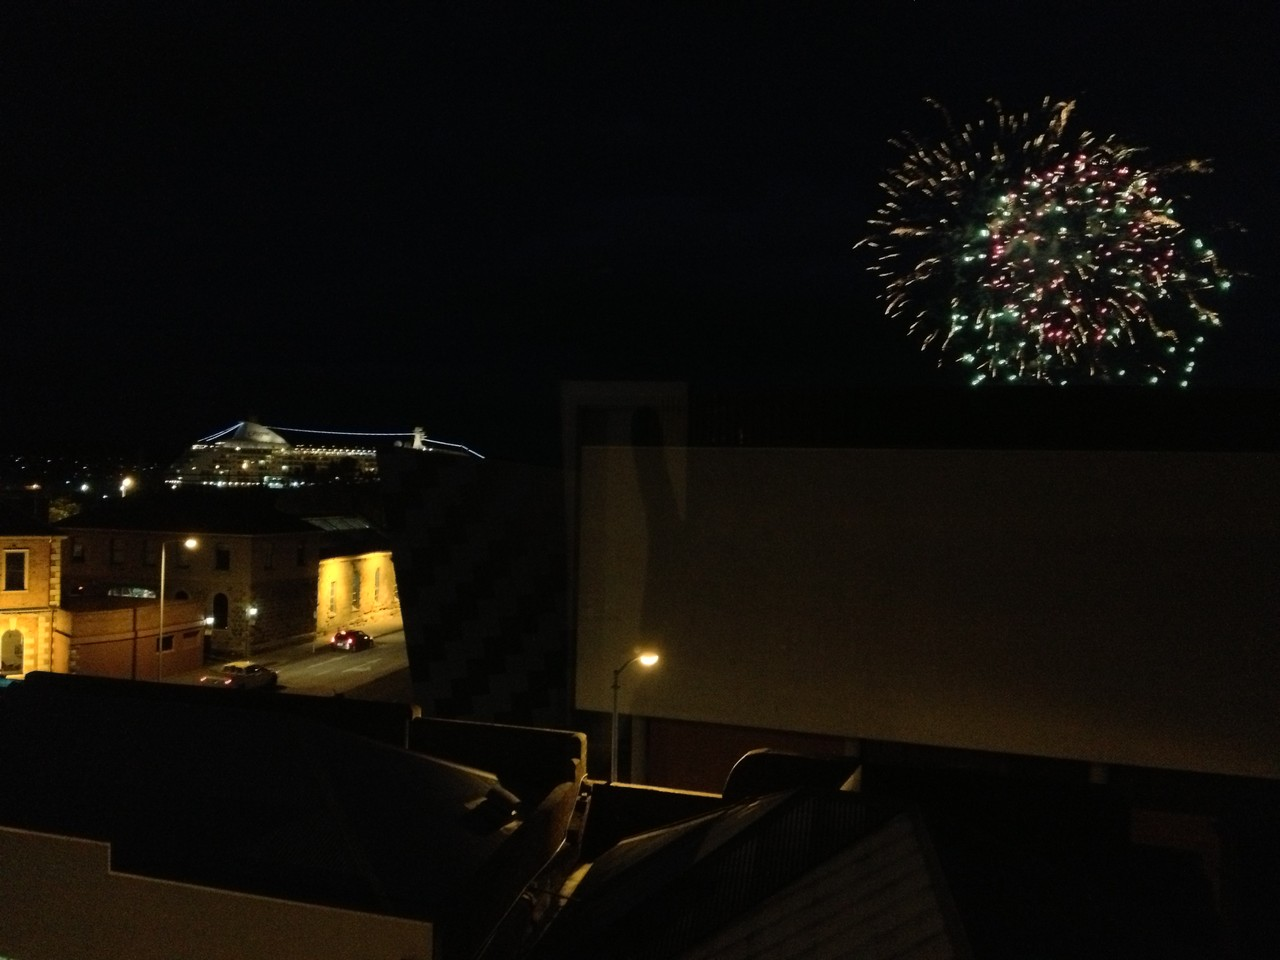 It's the 31st Dec and back at the hotel I see fireworks out of the window. Far away from family, I am